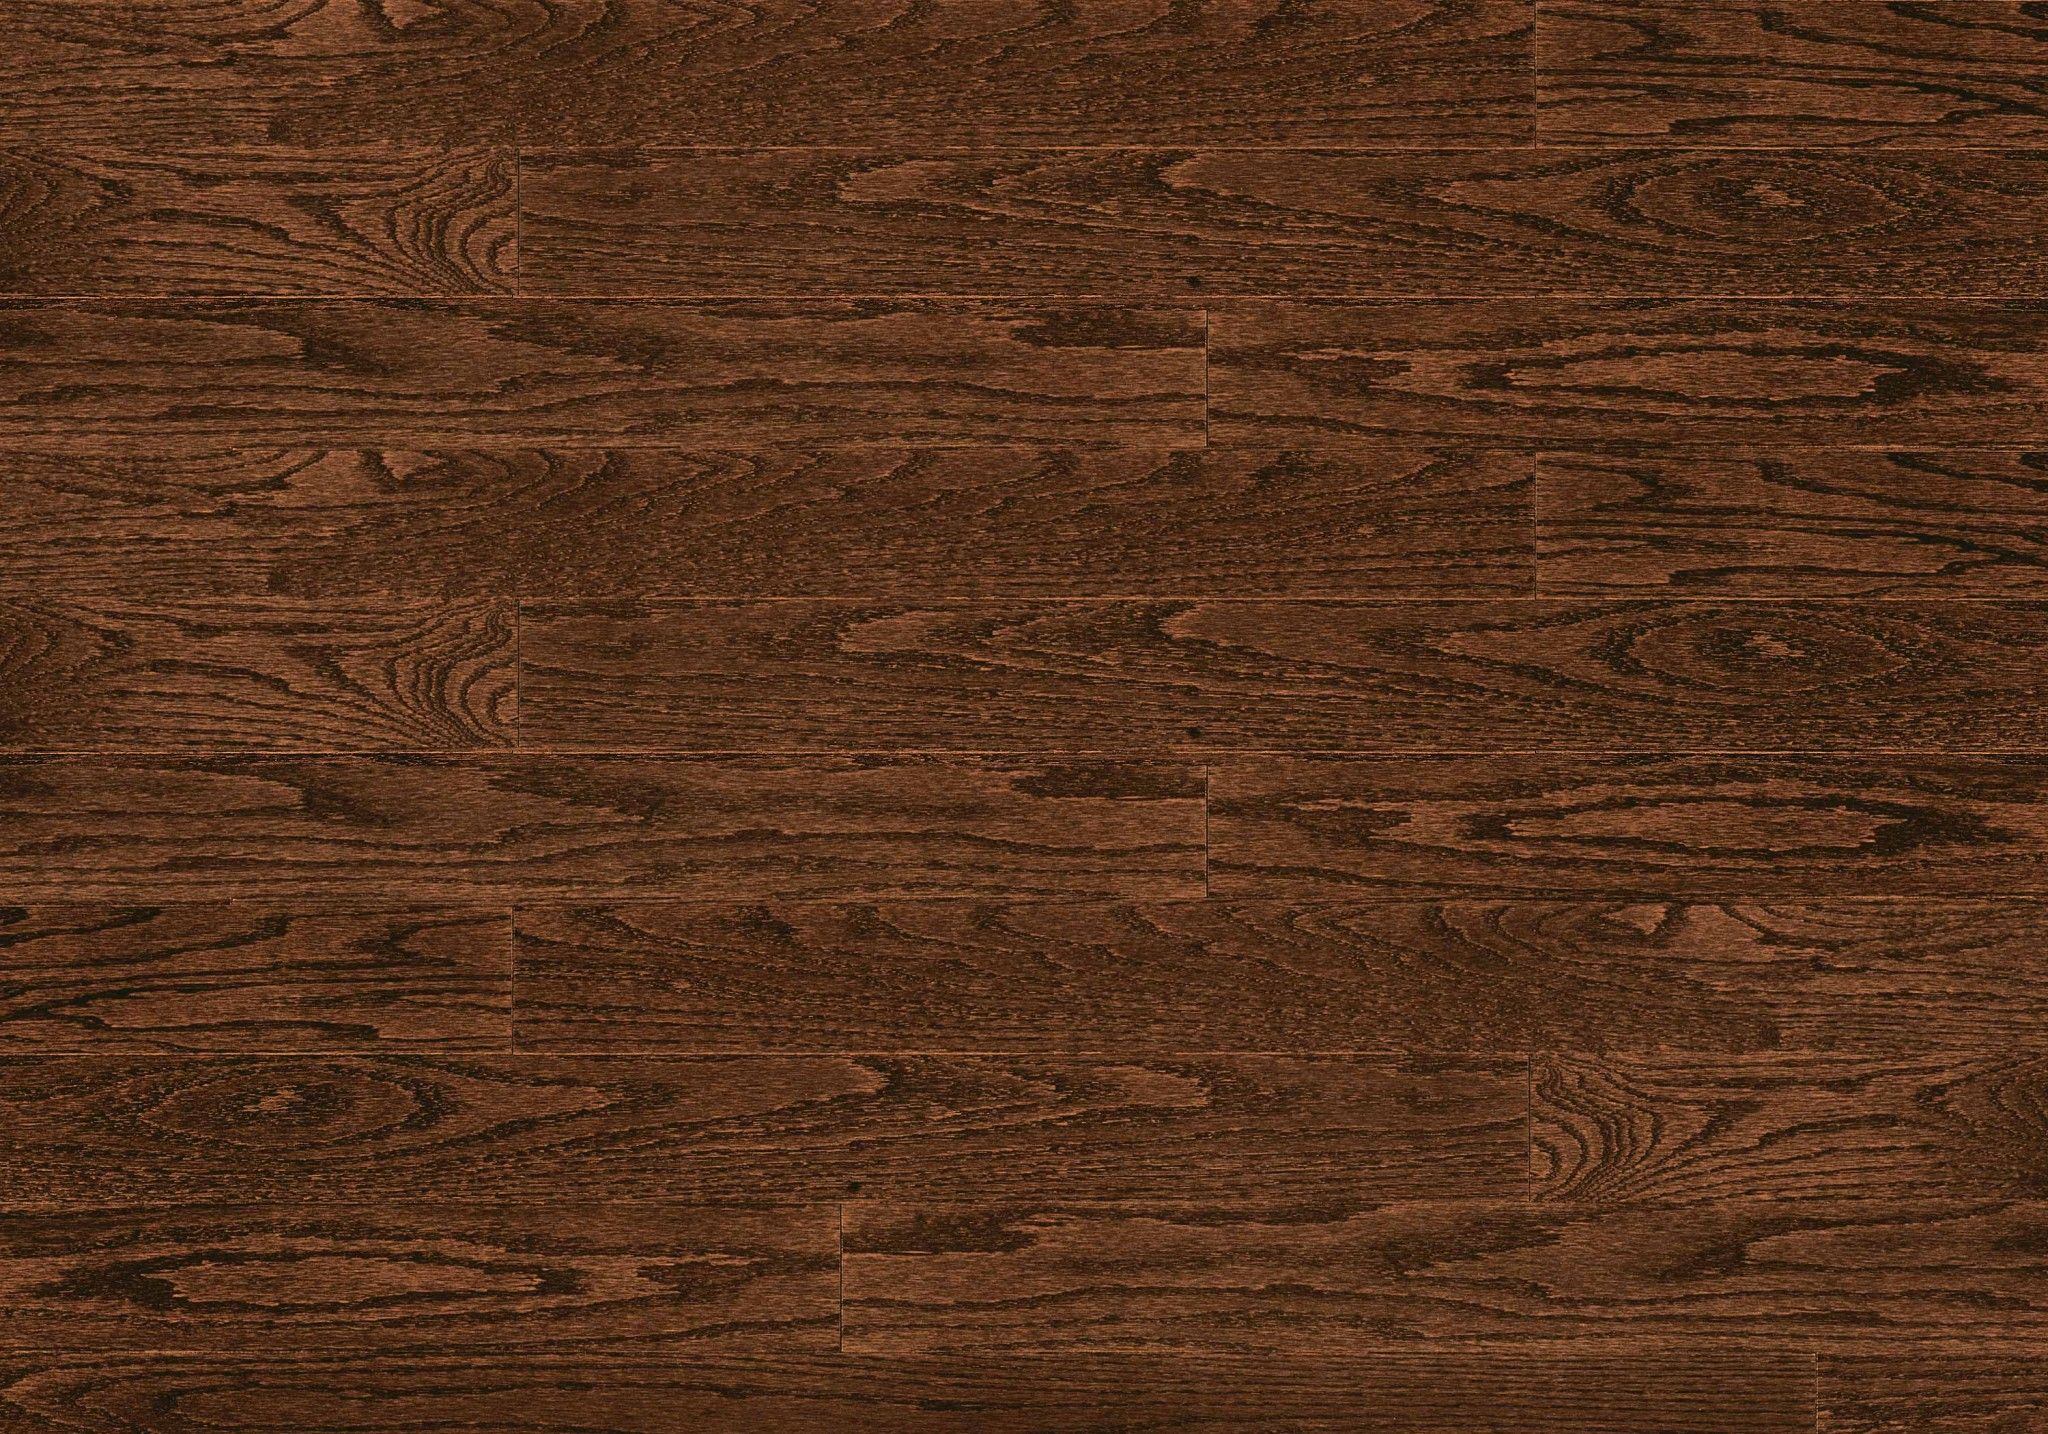 carob ambiance red oak exclusive lauzon hardwood flooring. Black Bedroom Furniture Sets. Home Design Ideas